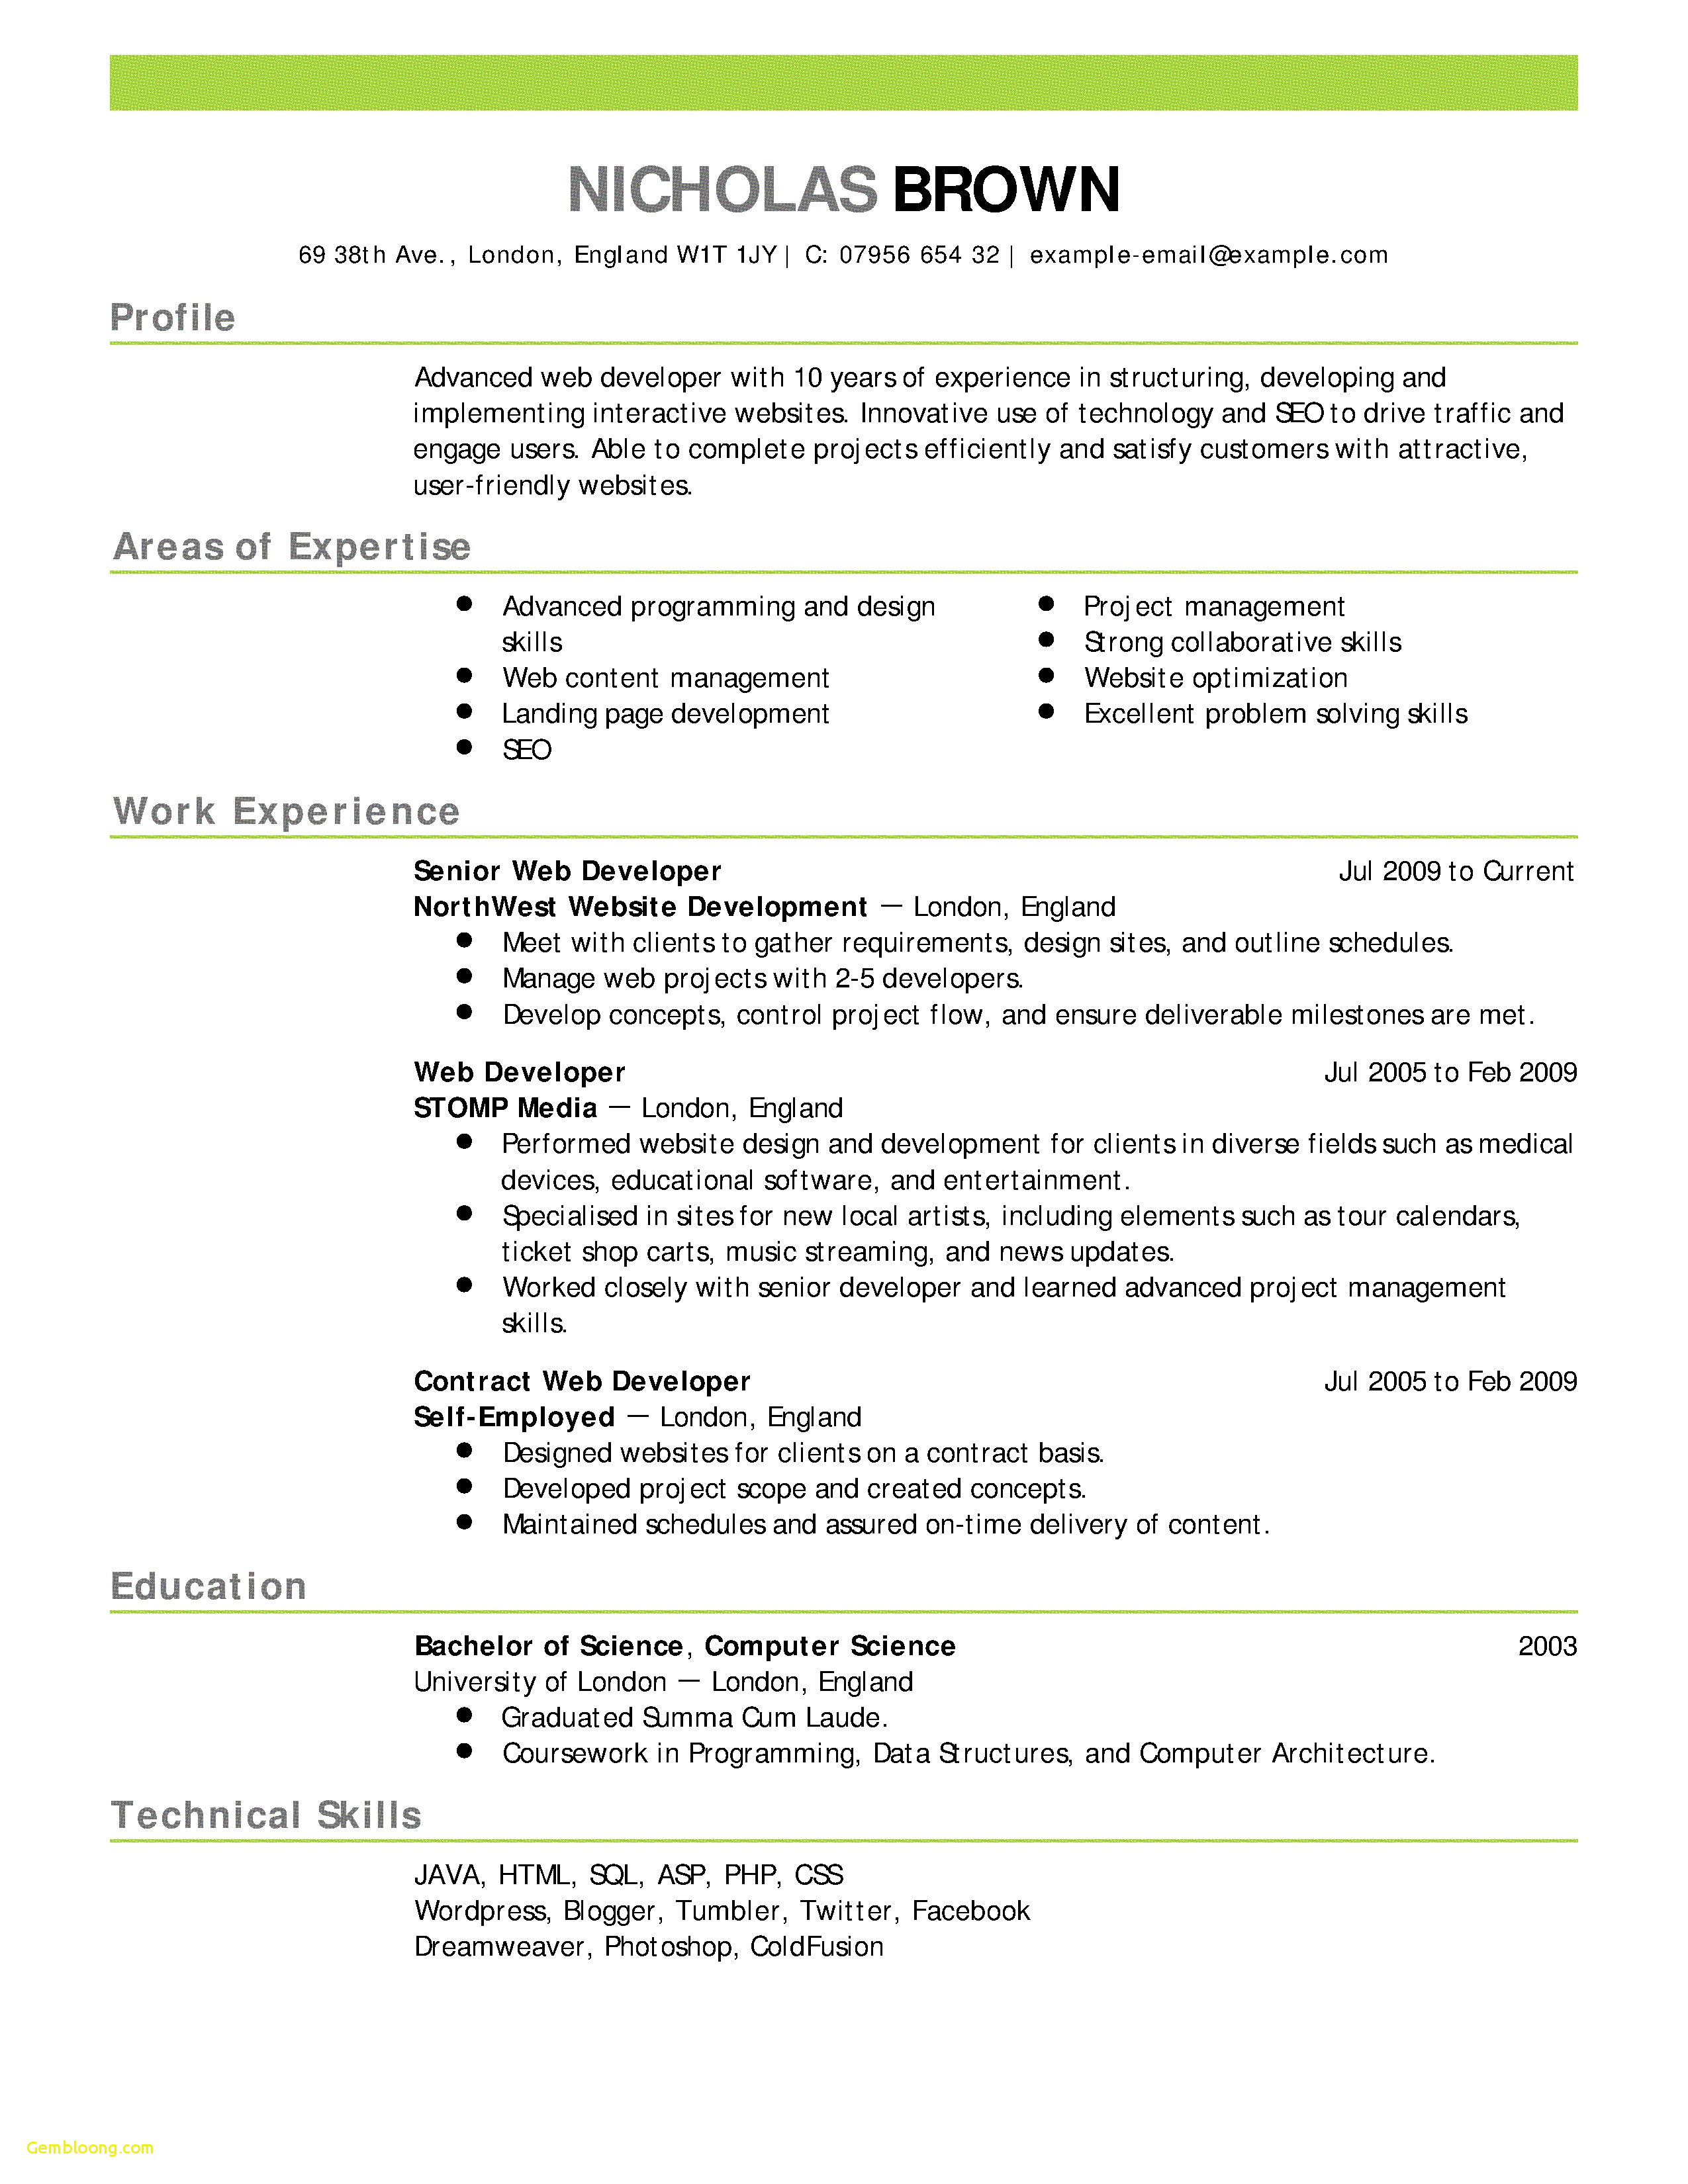 Insurance Marketing Letter Template - Insurance Resume Templates Download Professional Job Resume Template